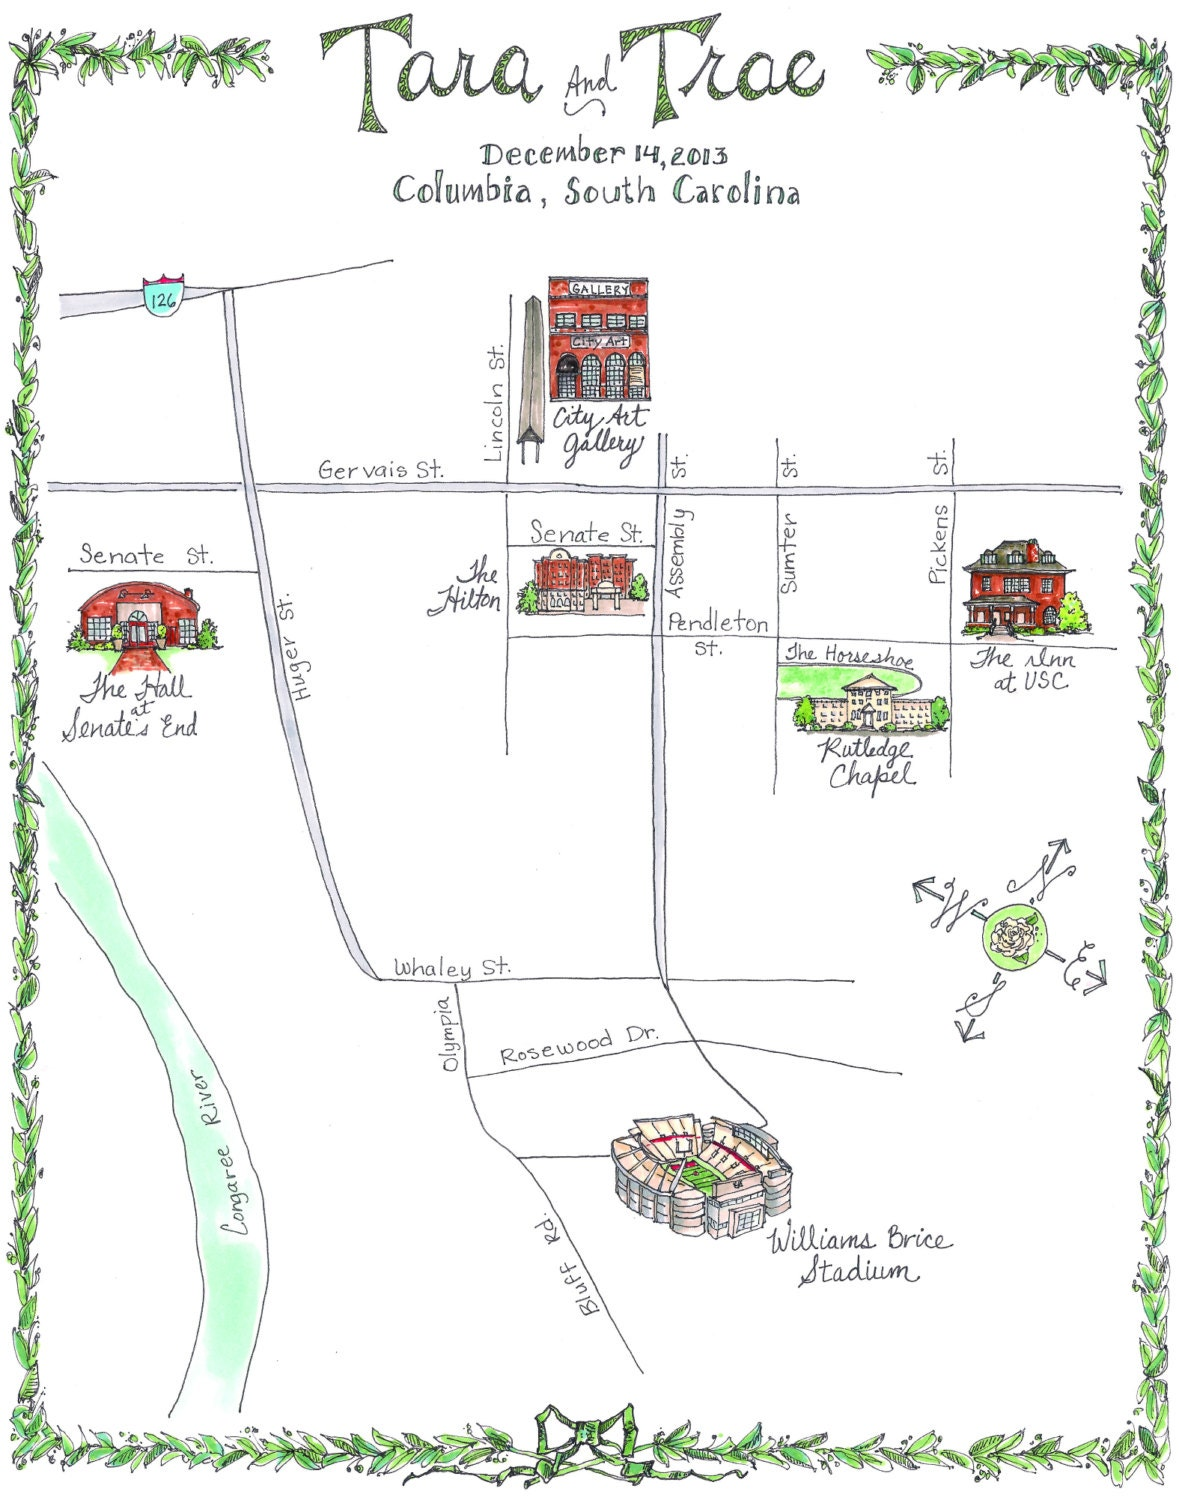 Made To Order Custom Wedding Map Columbia South Carolina - Map of usc columbia